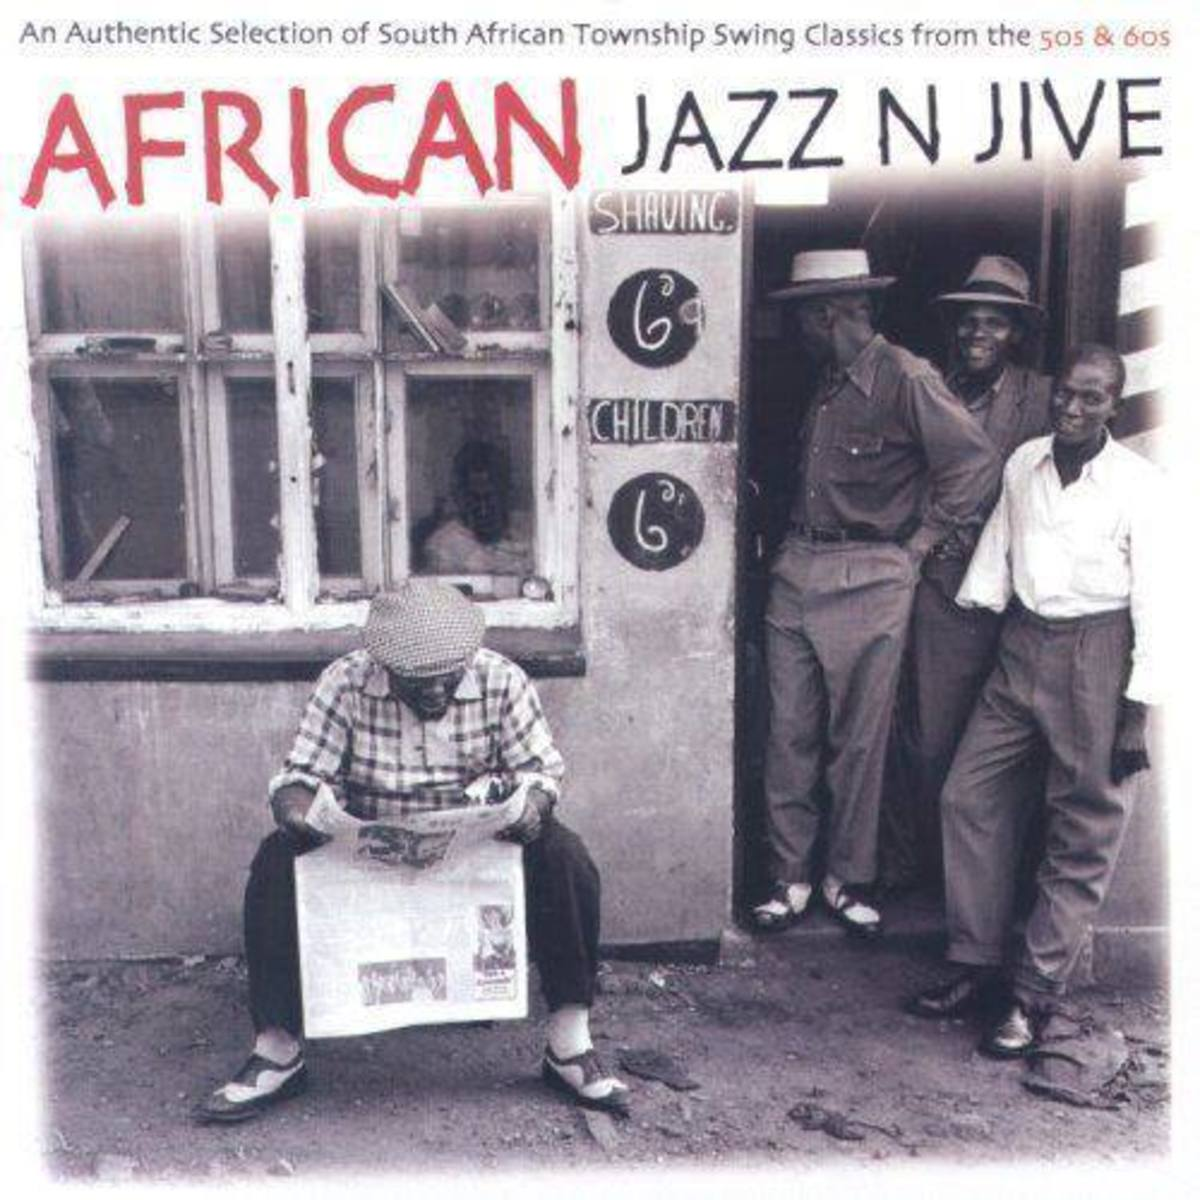 African Jazz n Jive: An Authentic Selection of South African Township Swing Classics from the 50s & 60s